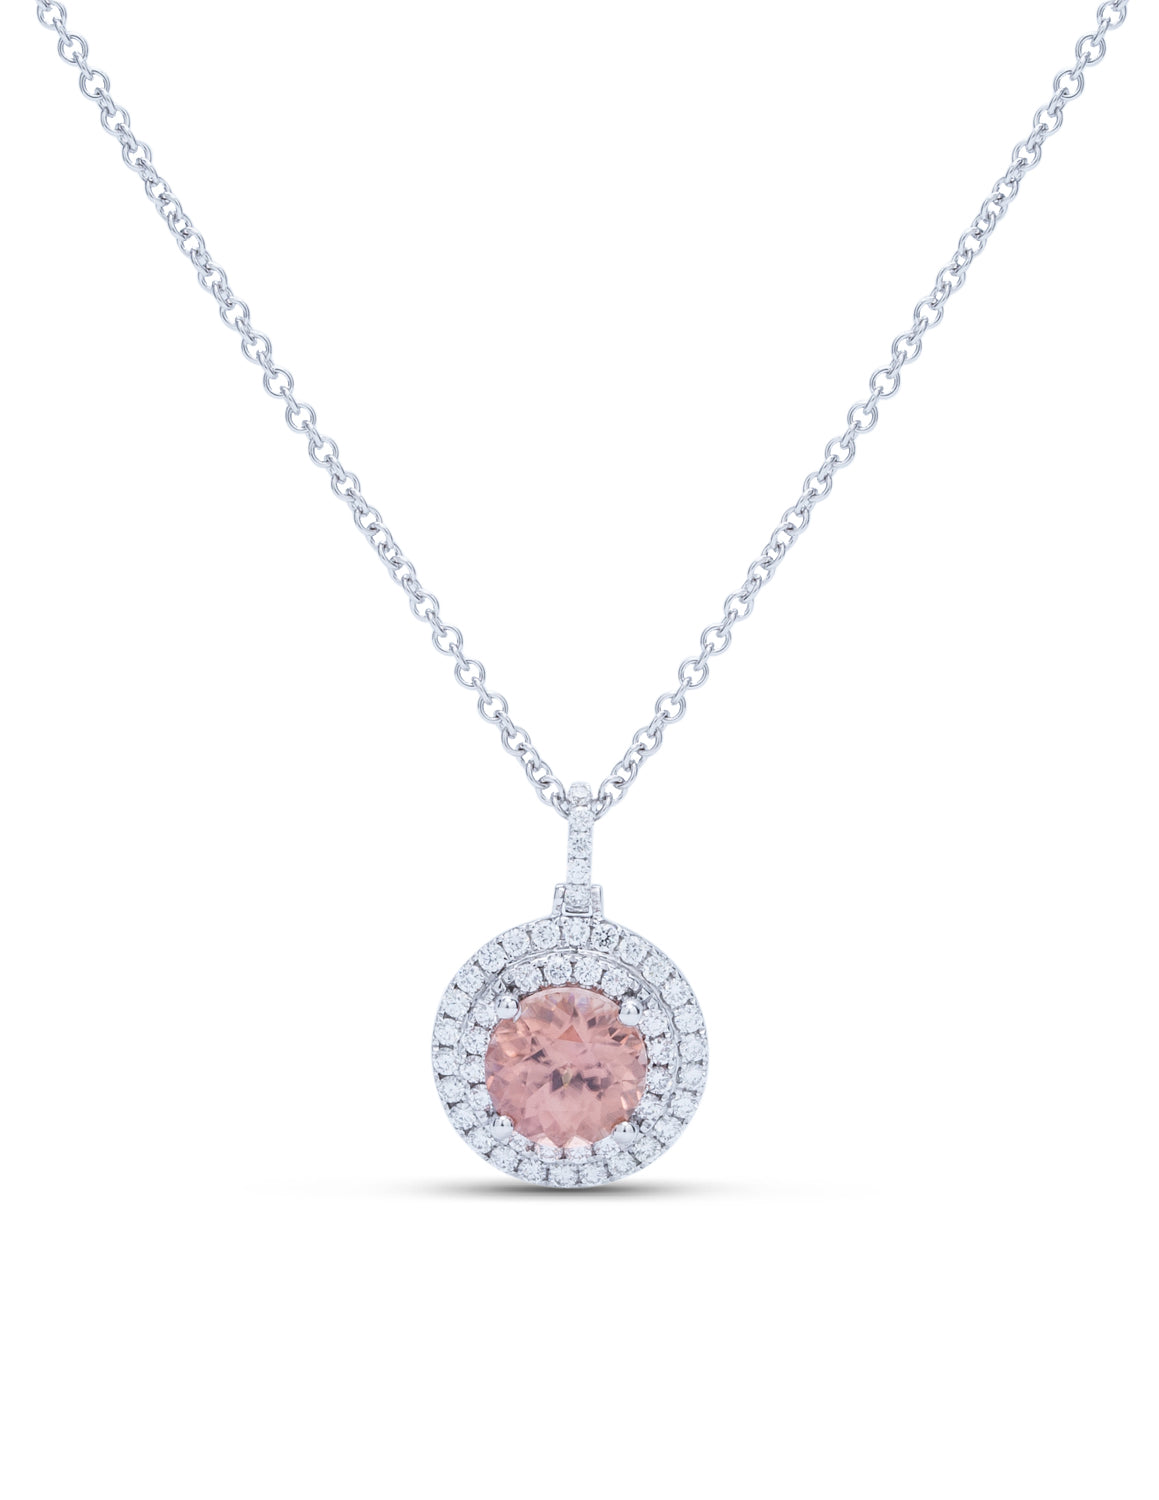 Zircon and Diamond Pendant - Charles Koll Jewellers